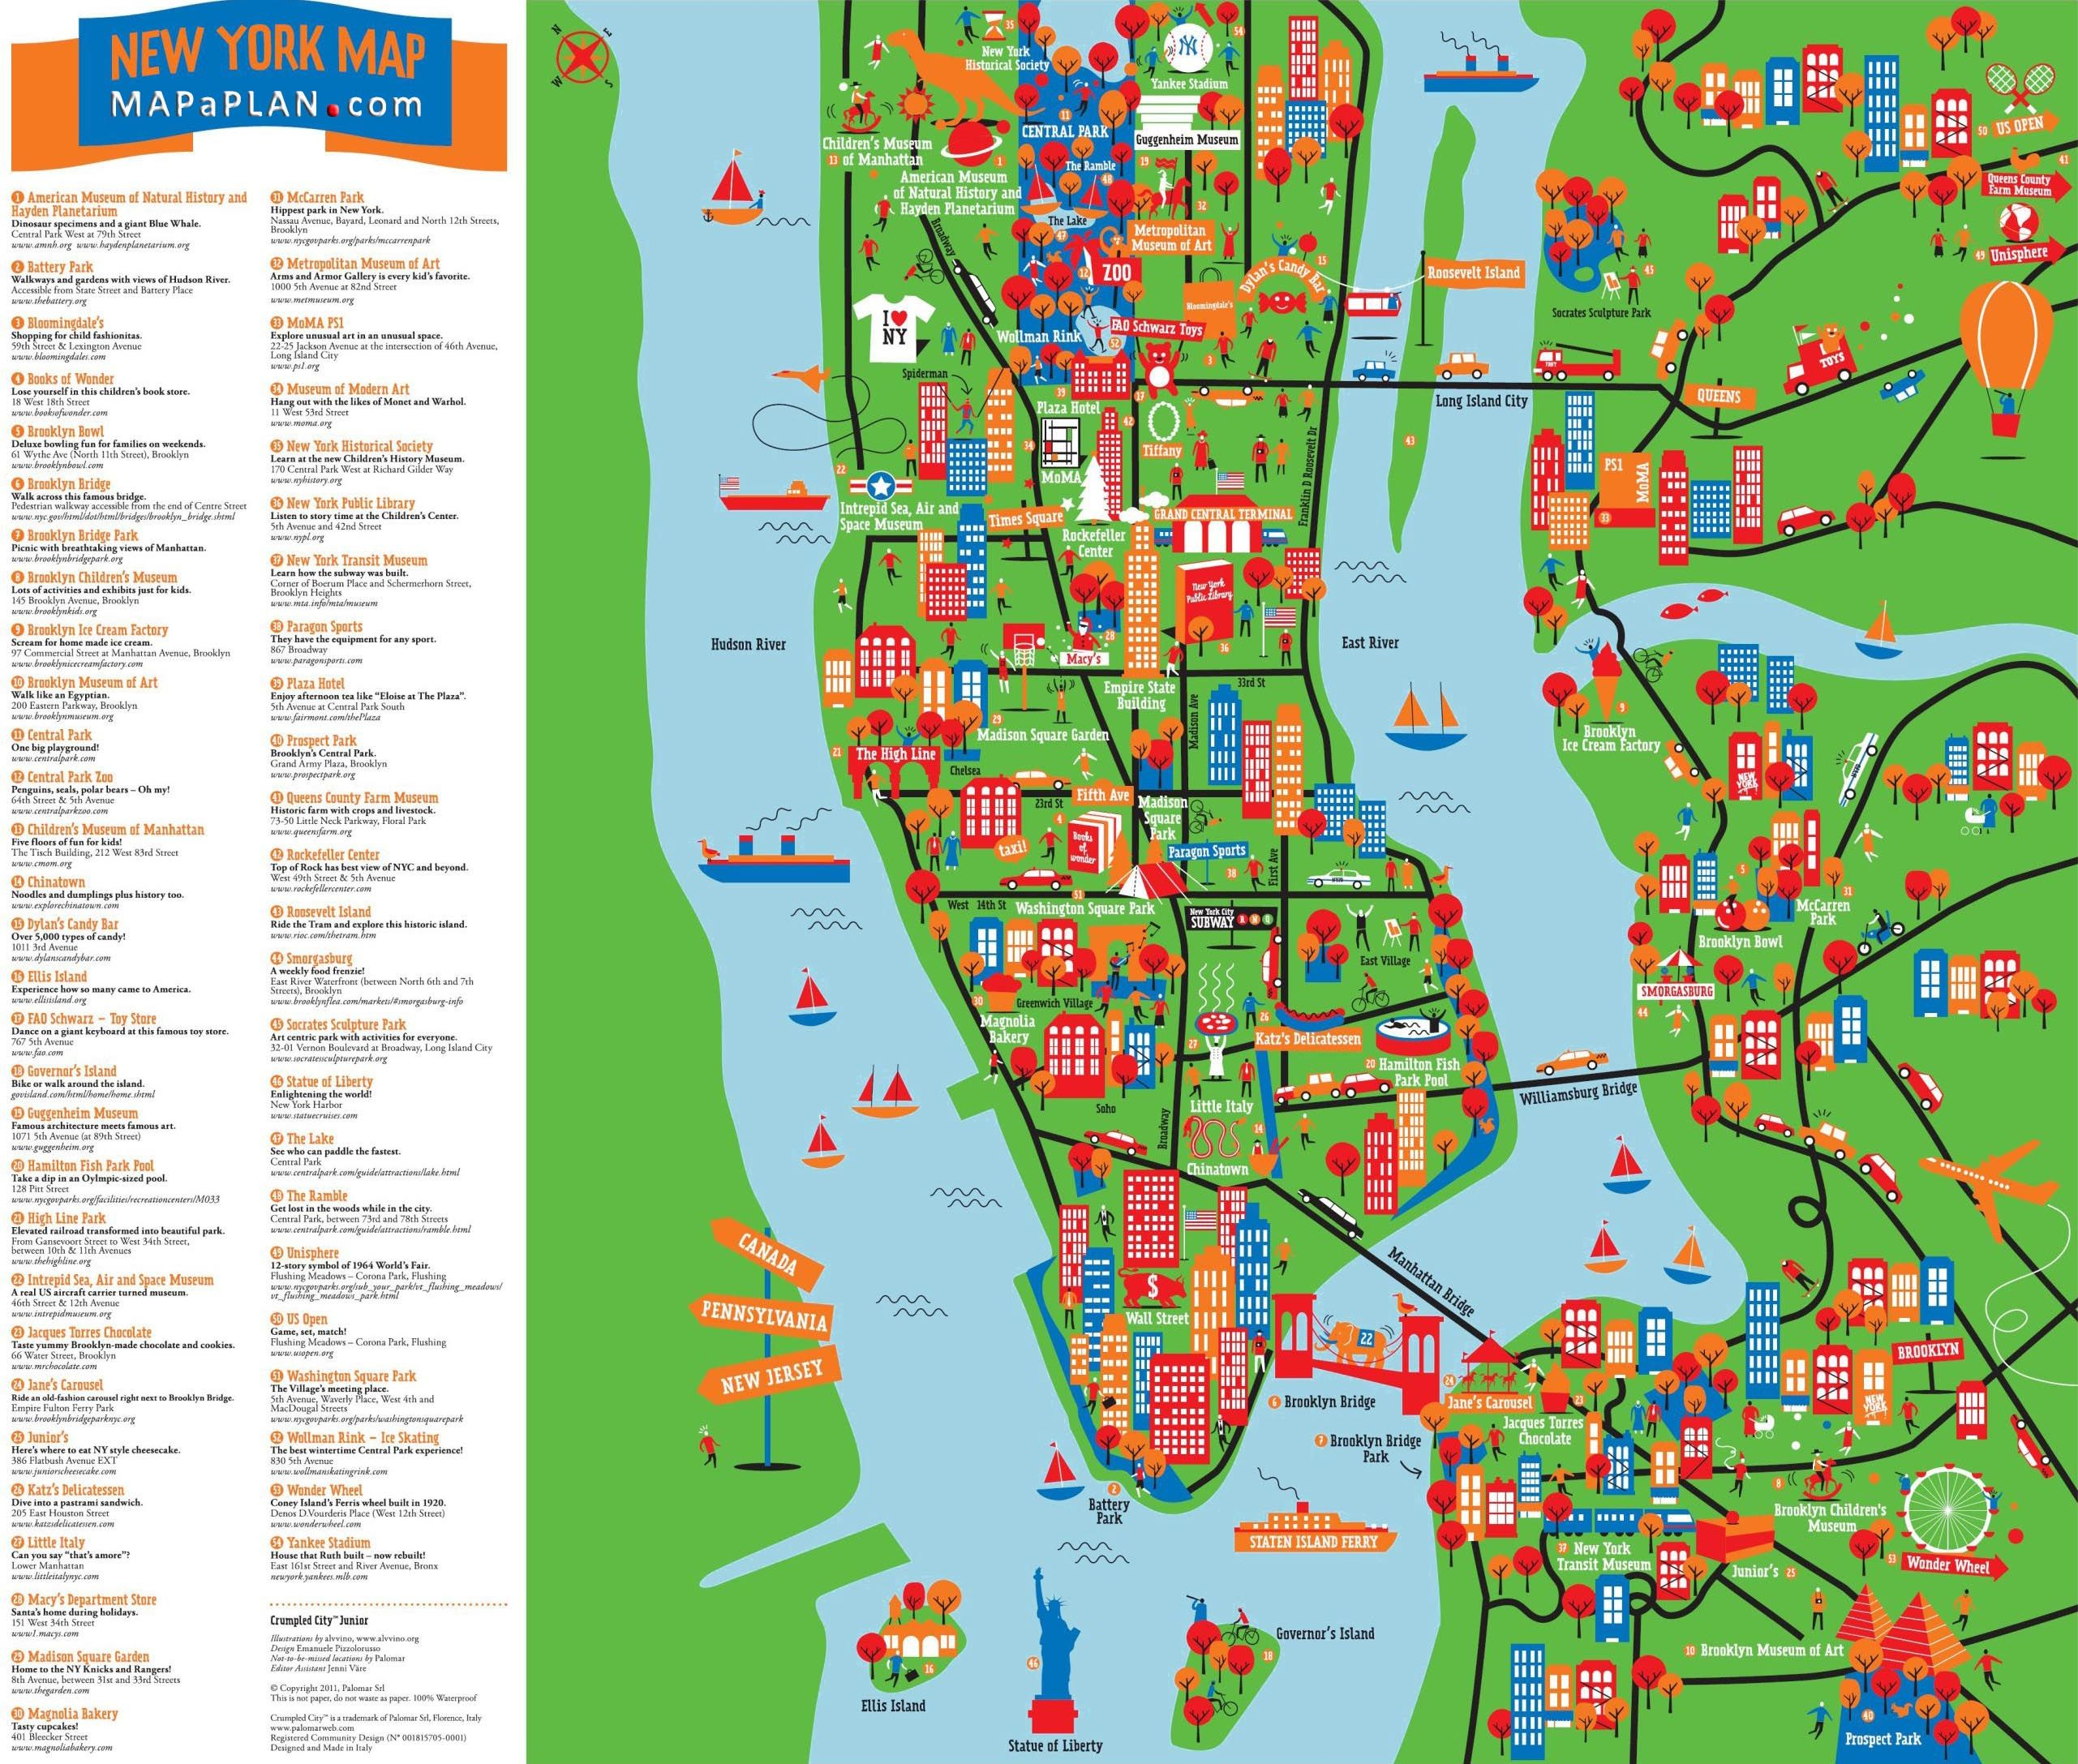 greatthingstodowithkidschildreninteractivecolorfulnew – Michigan Tourist Attractions Map